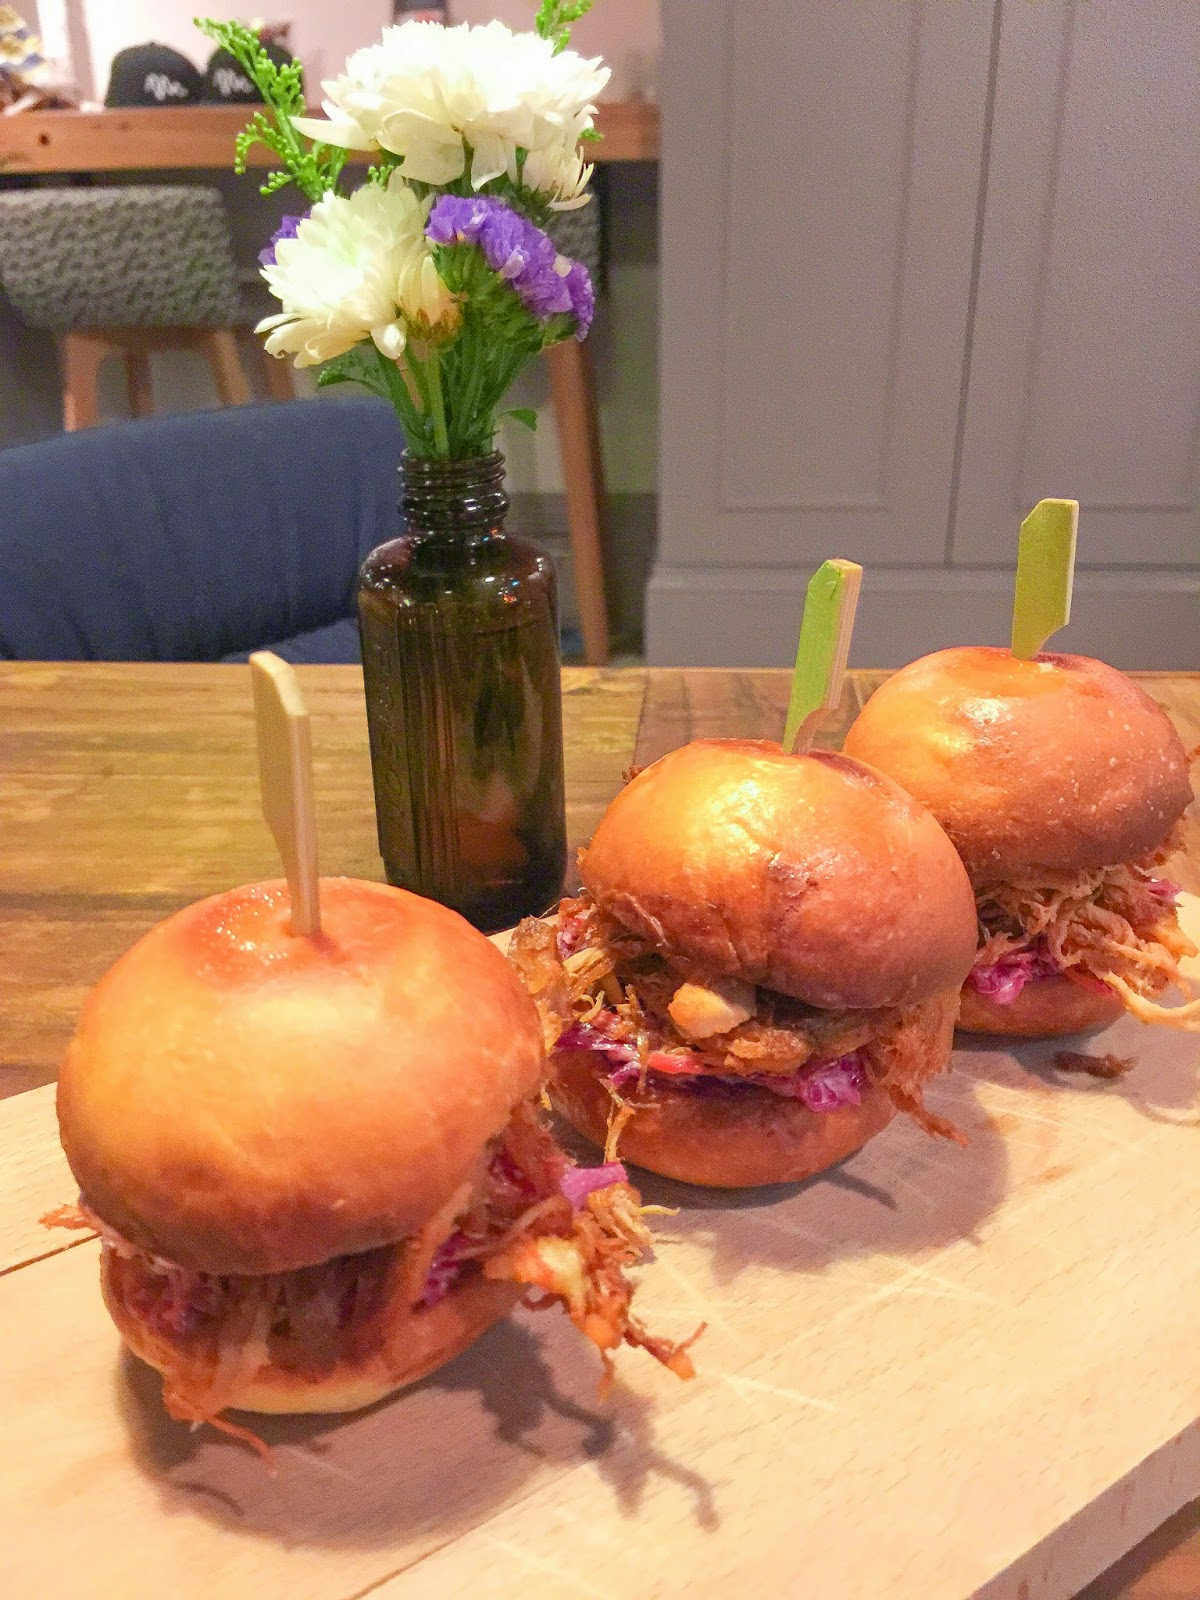 Club meatballs Pulled Pork Sliders menu singapore